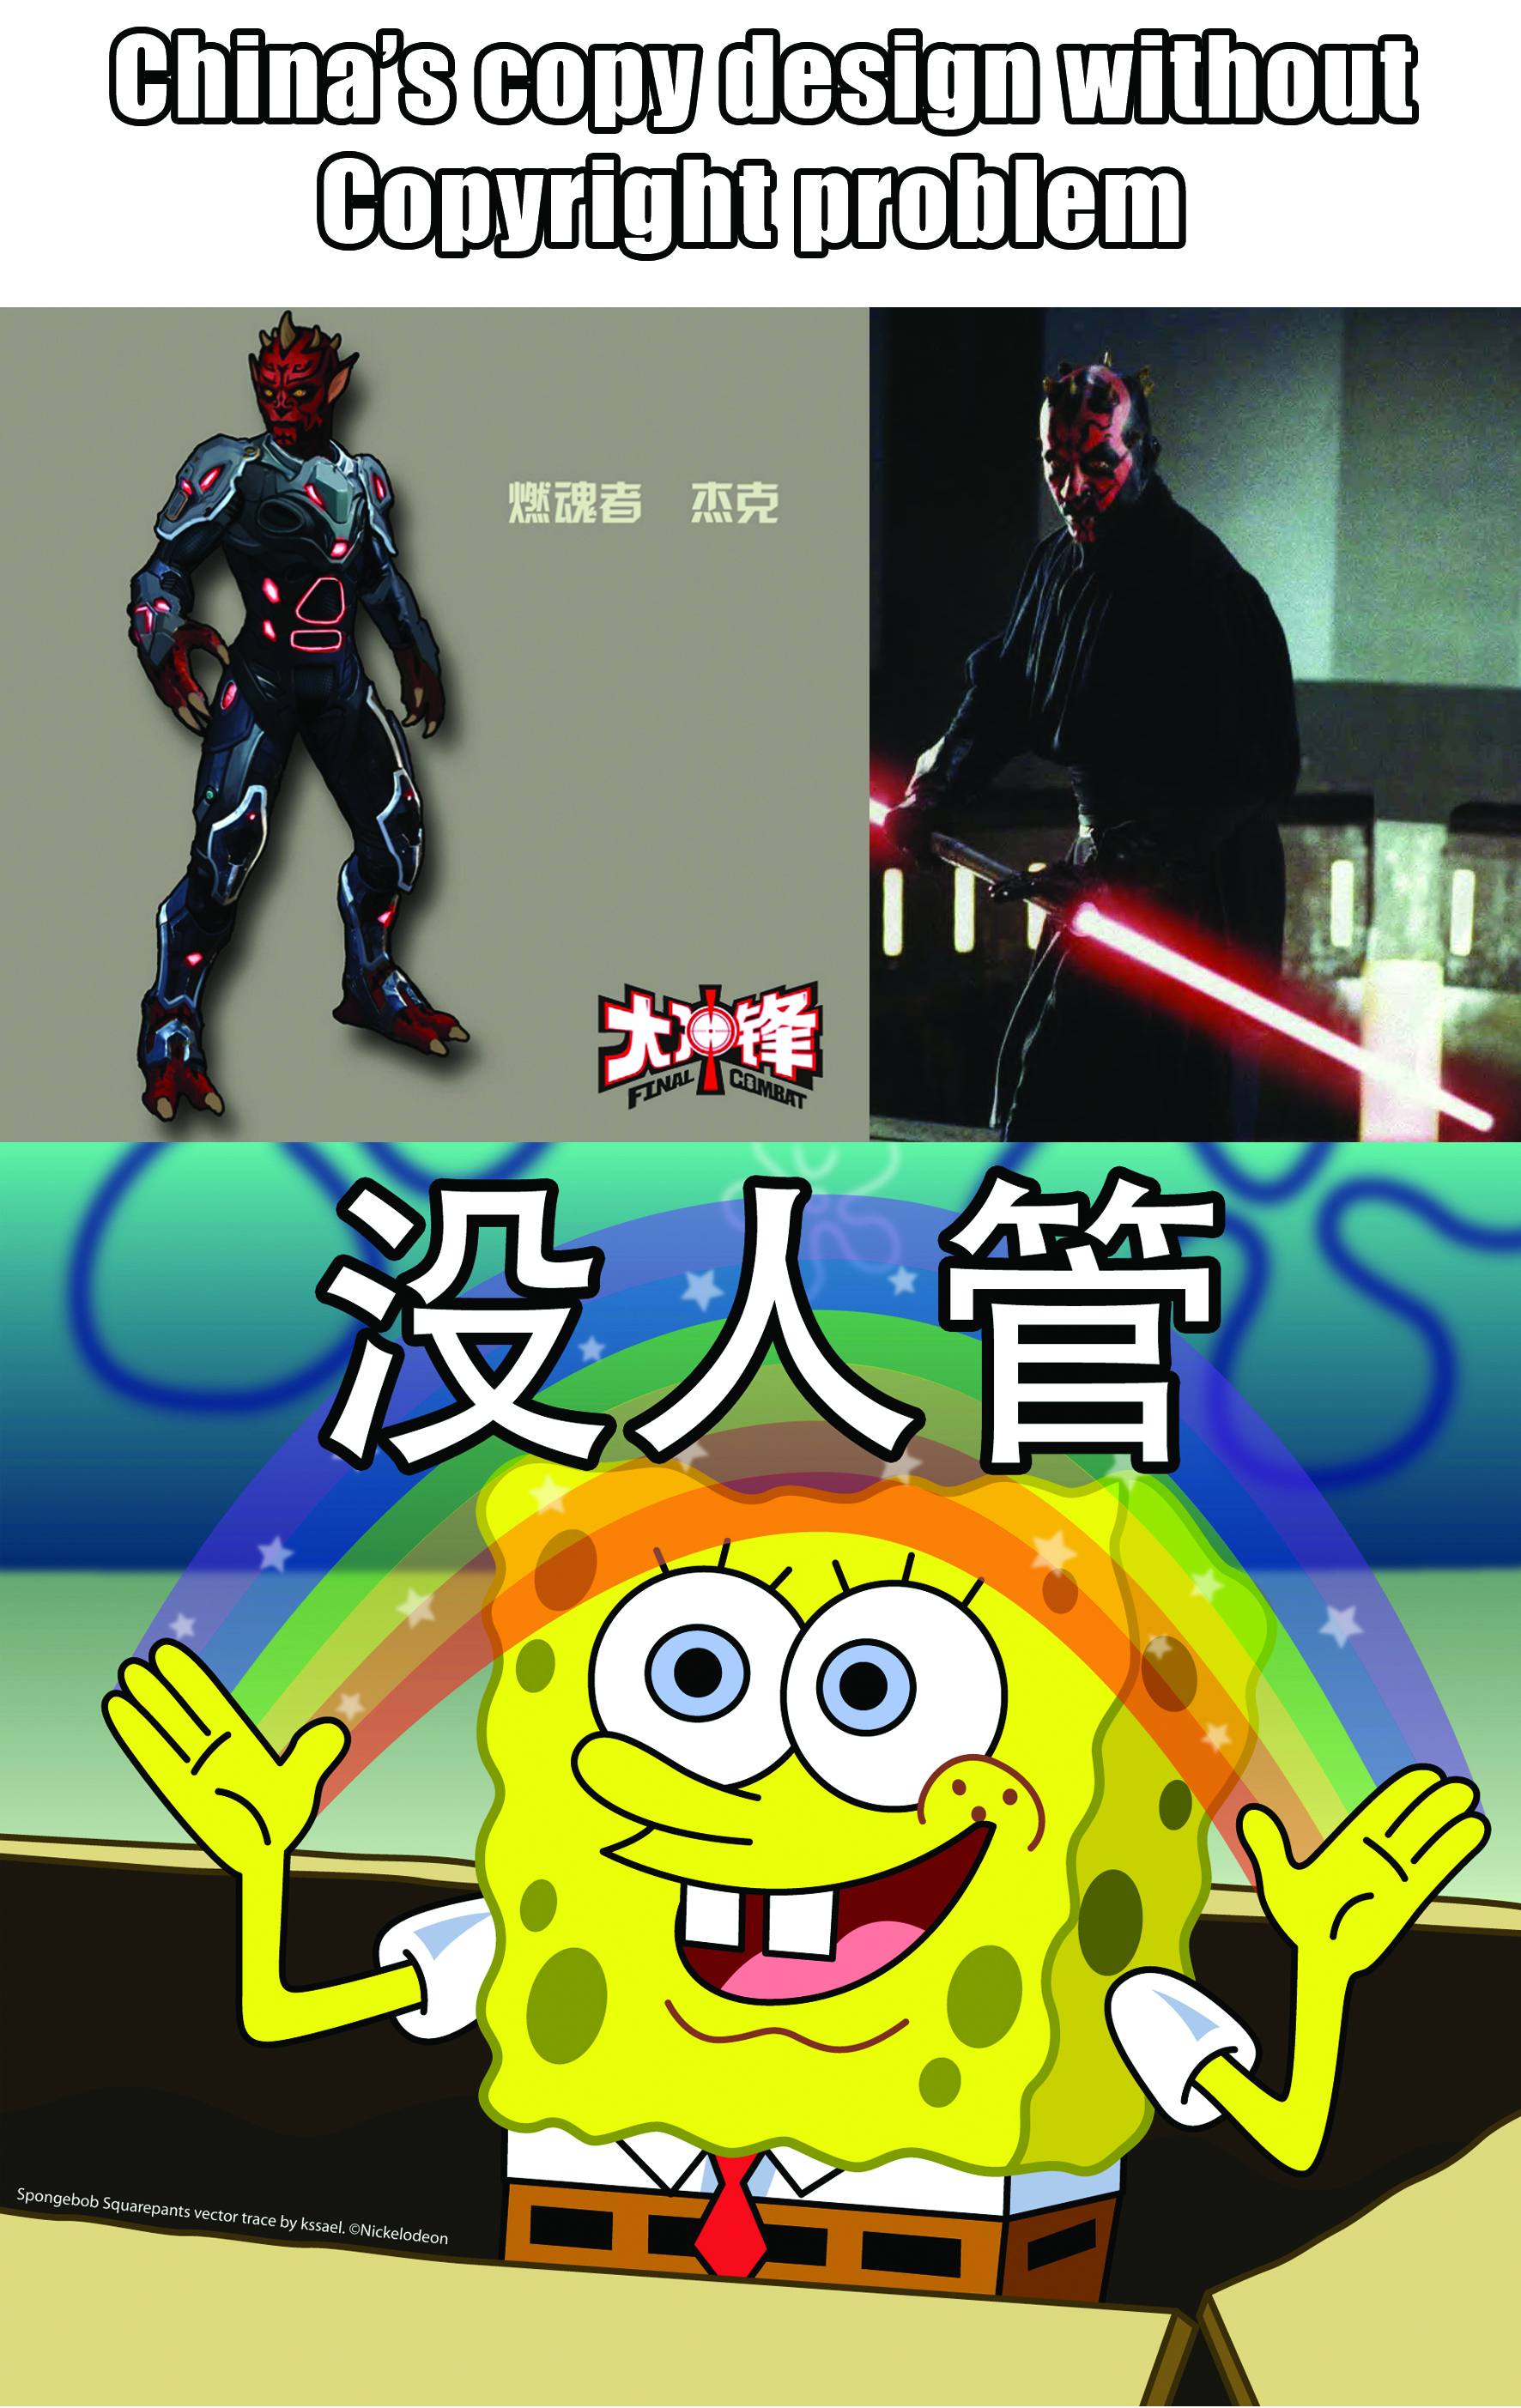 Chinas cody design without copyrightproblem 燃魂者 杰克 spongebob squarepants vector trace by kssael